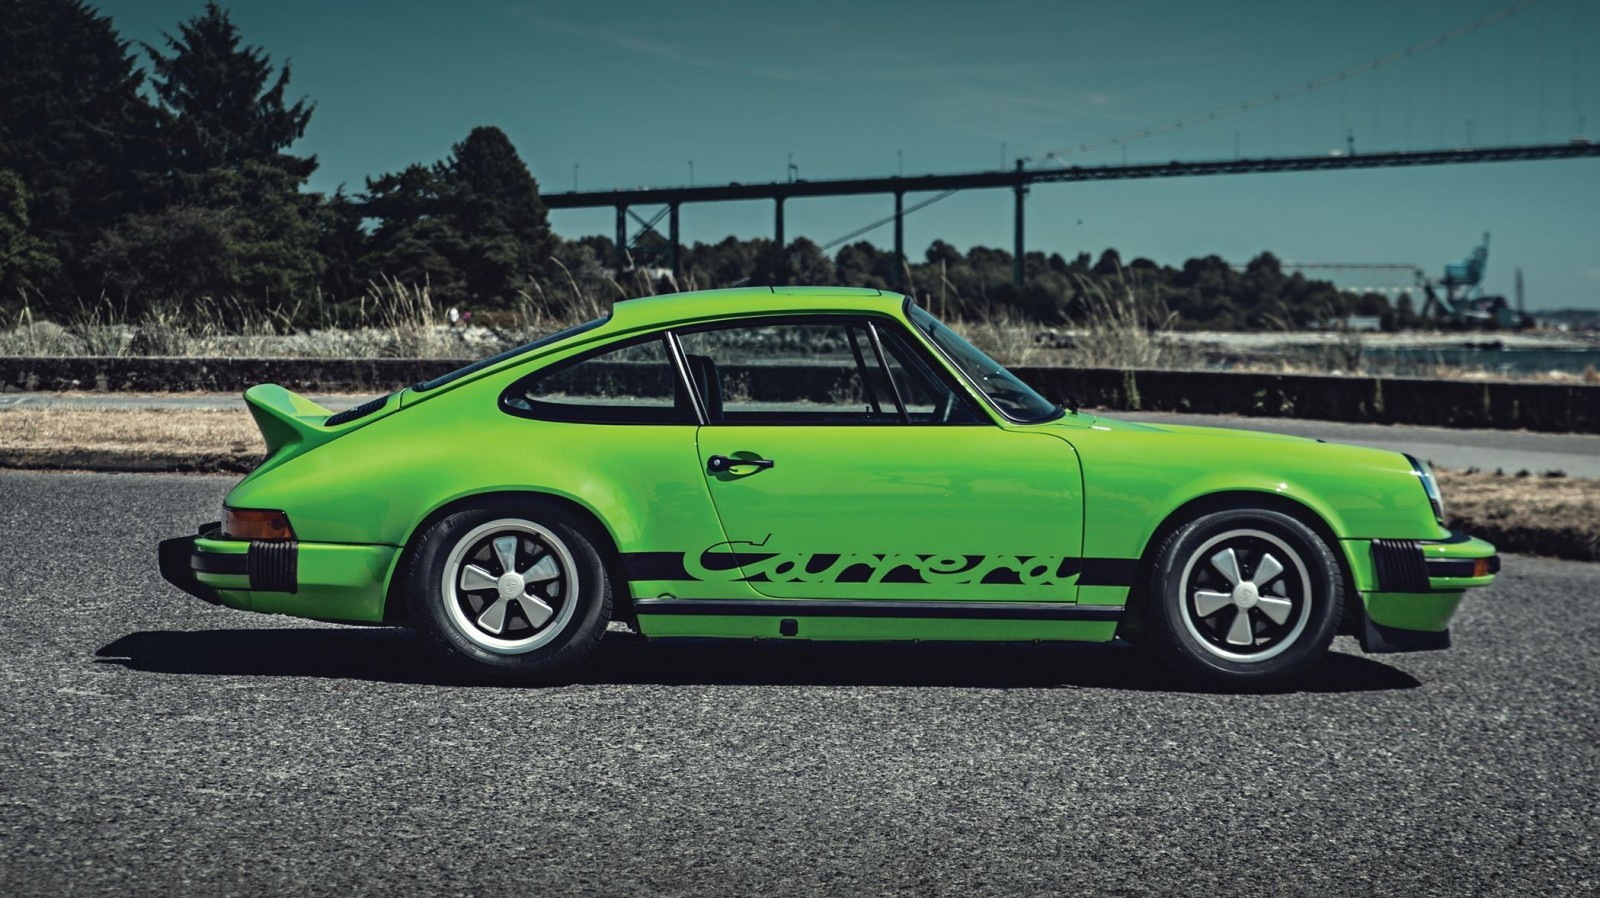 1974 porsche 911 carrera 2 7 is lime green dream for rm monterey 2015. Black Bedroom Furniture Sets. Home Design Ideas